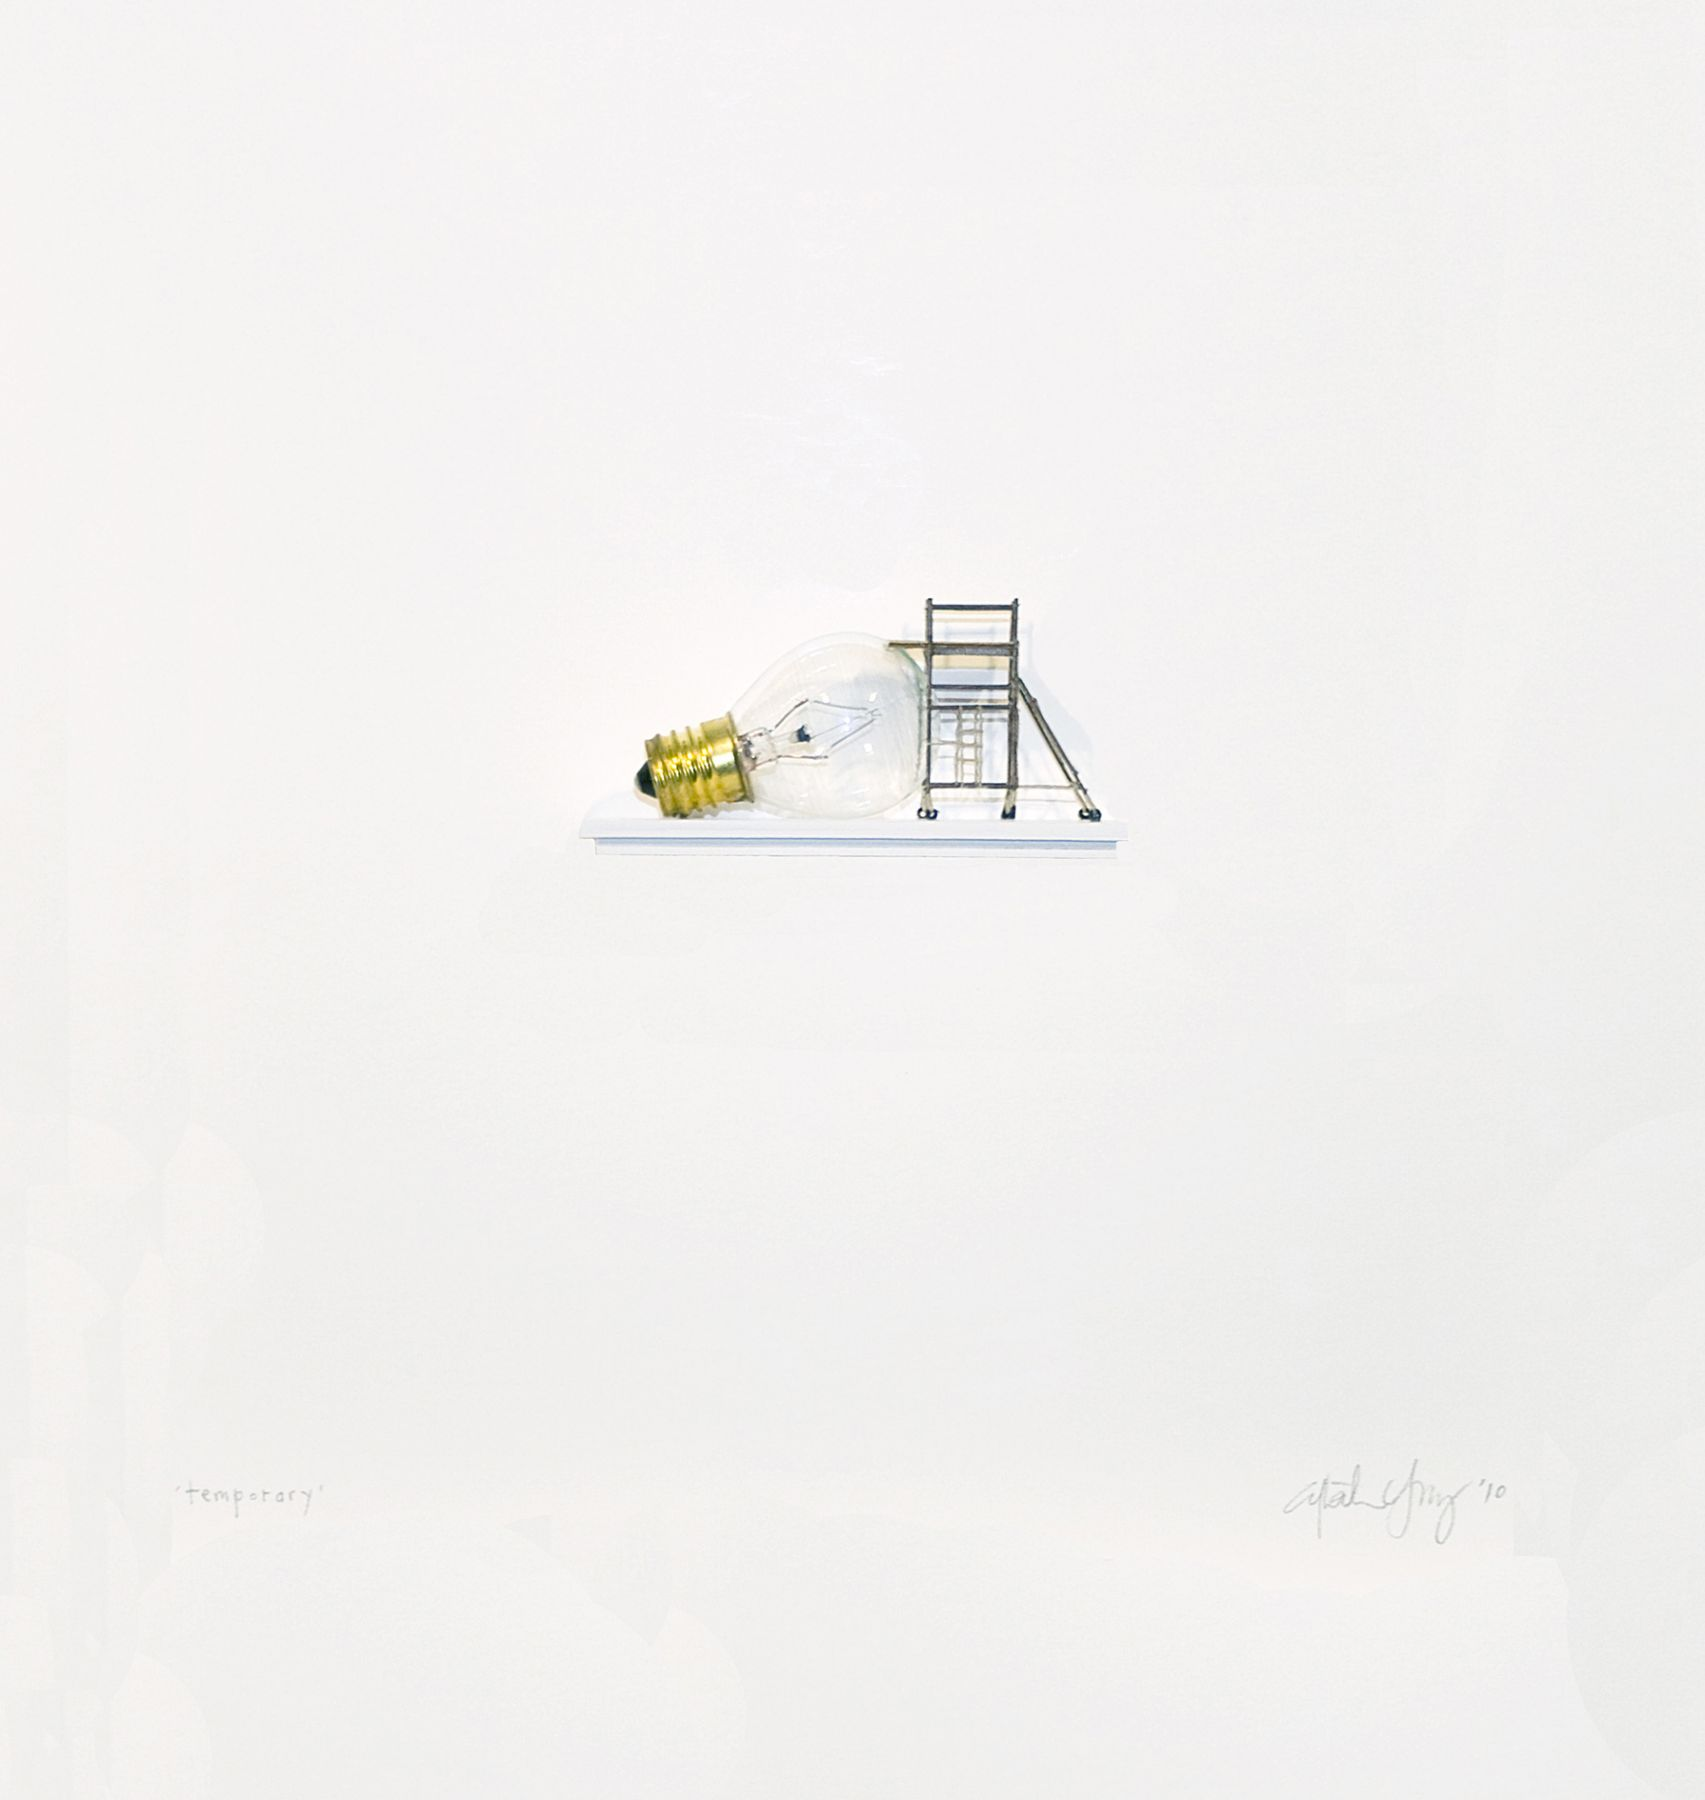 Cybèle Young, Temporary, 2010, Japanese paper and found object, 14 1/8 x 14 1/8 inches